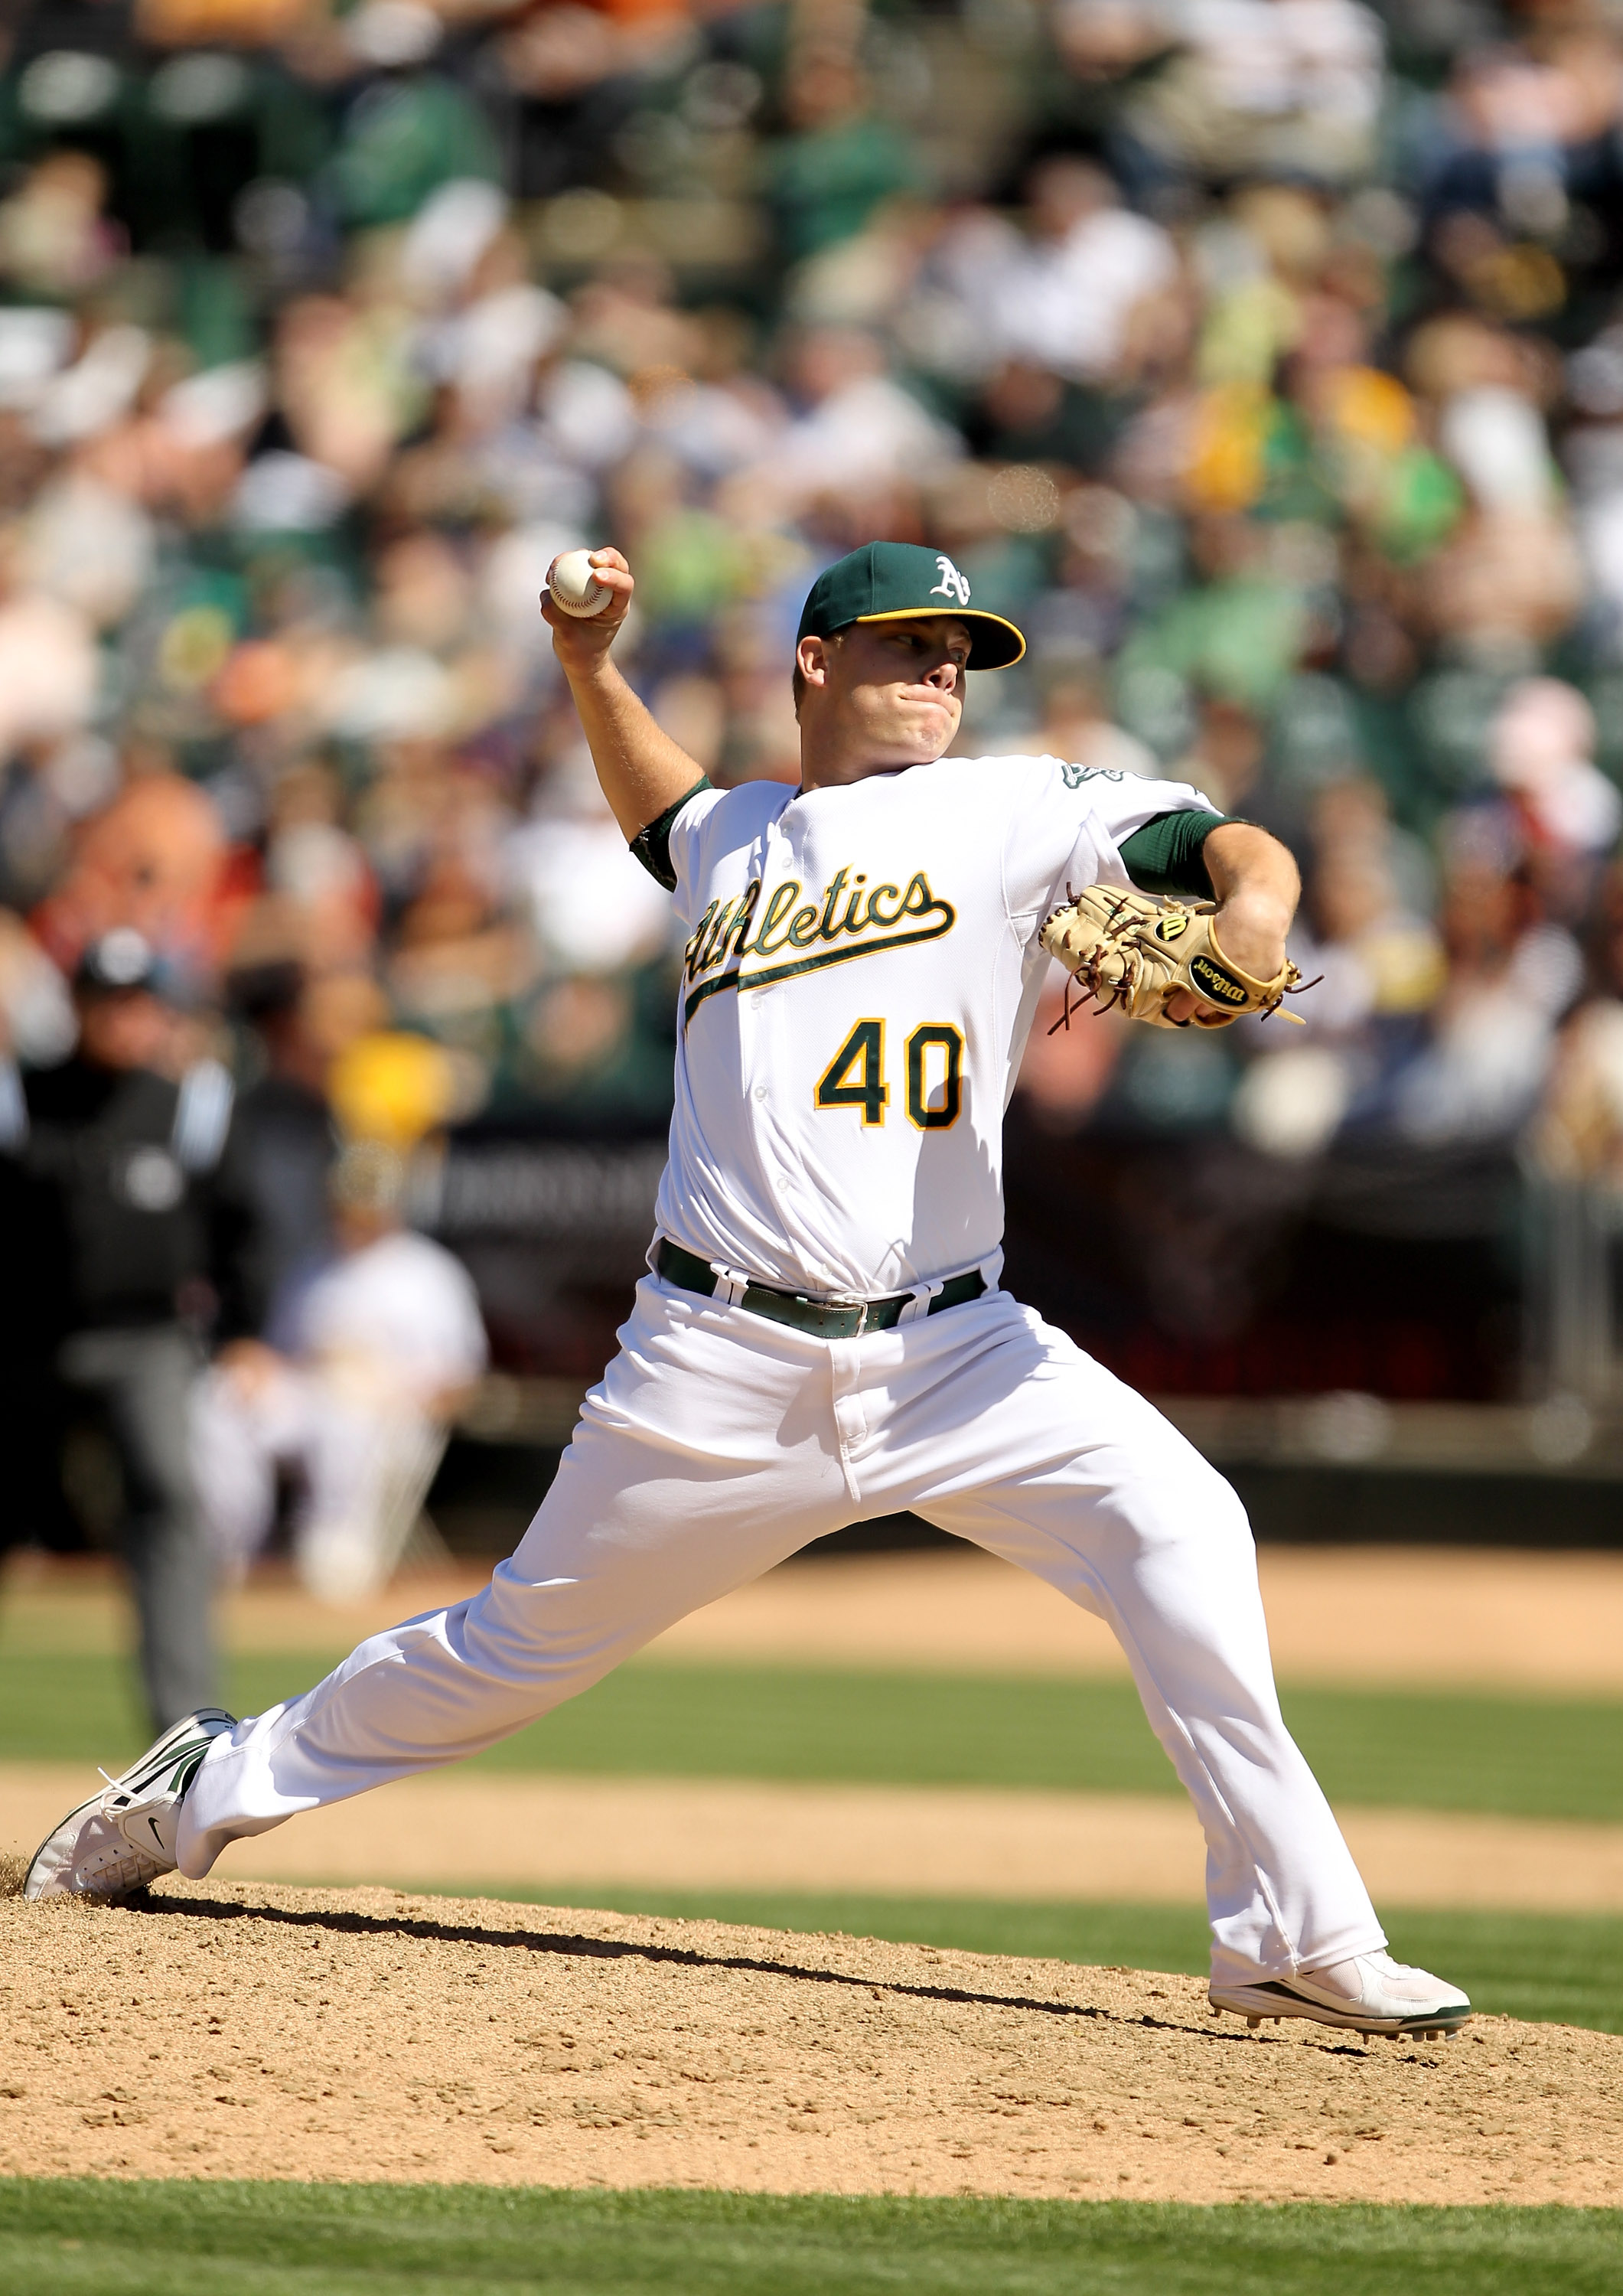 OAKLAND, CA - MAY 23:  Andrew Bailey #40 of the Oakland Athletics pitches against the San Francisco Giants at the Oakland-Alameda County Coliseum on May 23, 2010 in Oakland, California.  (Photo by Ezra Shaw/Getty Images)